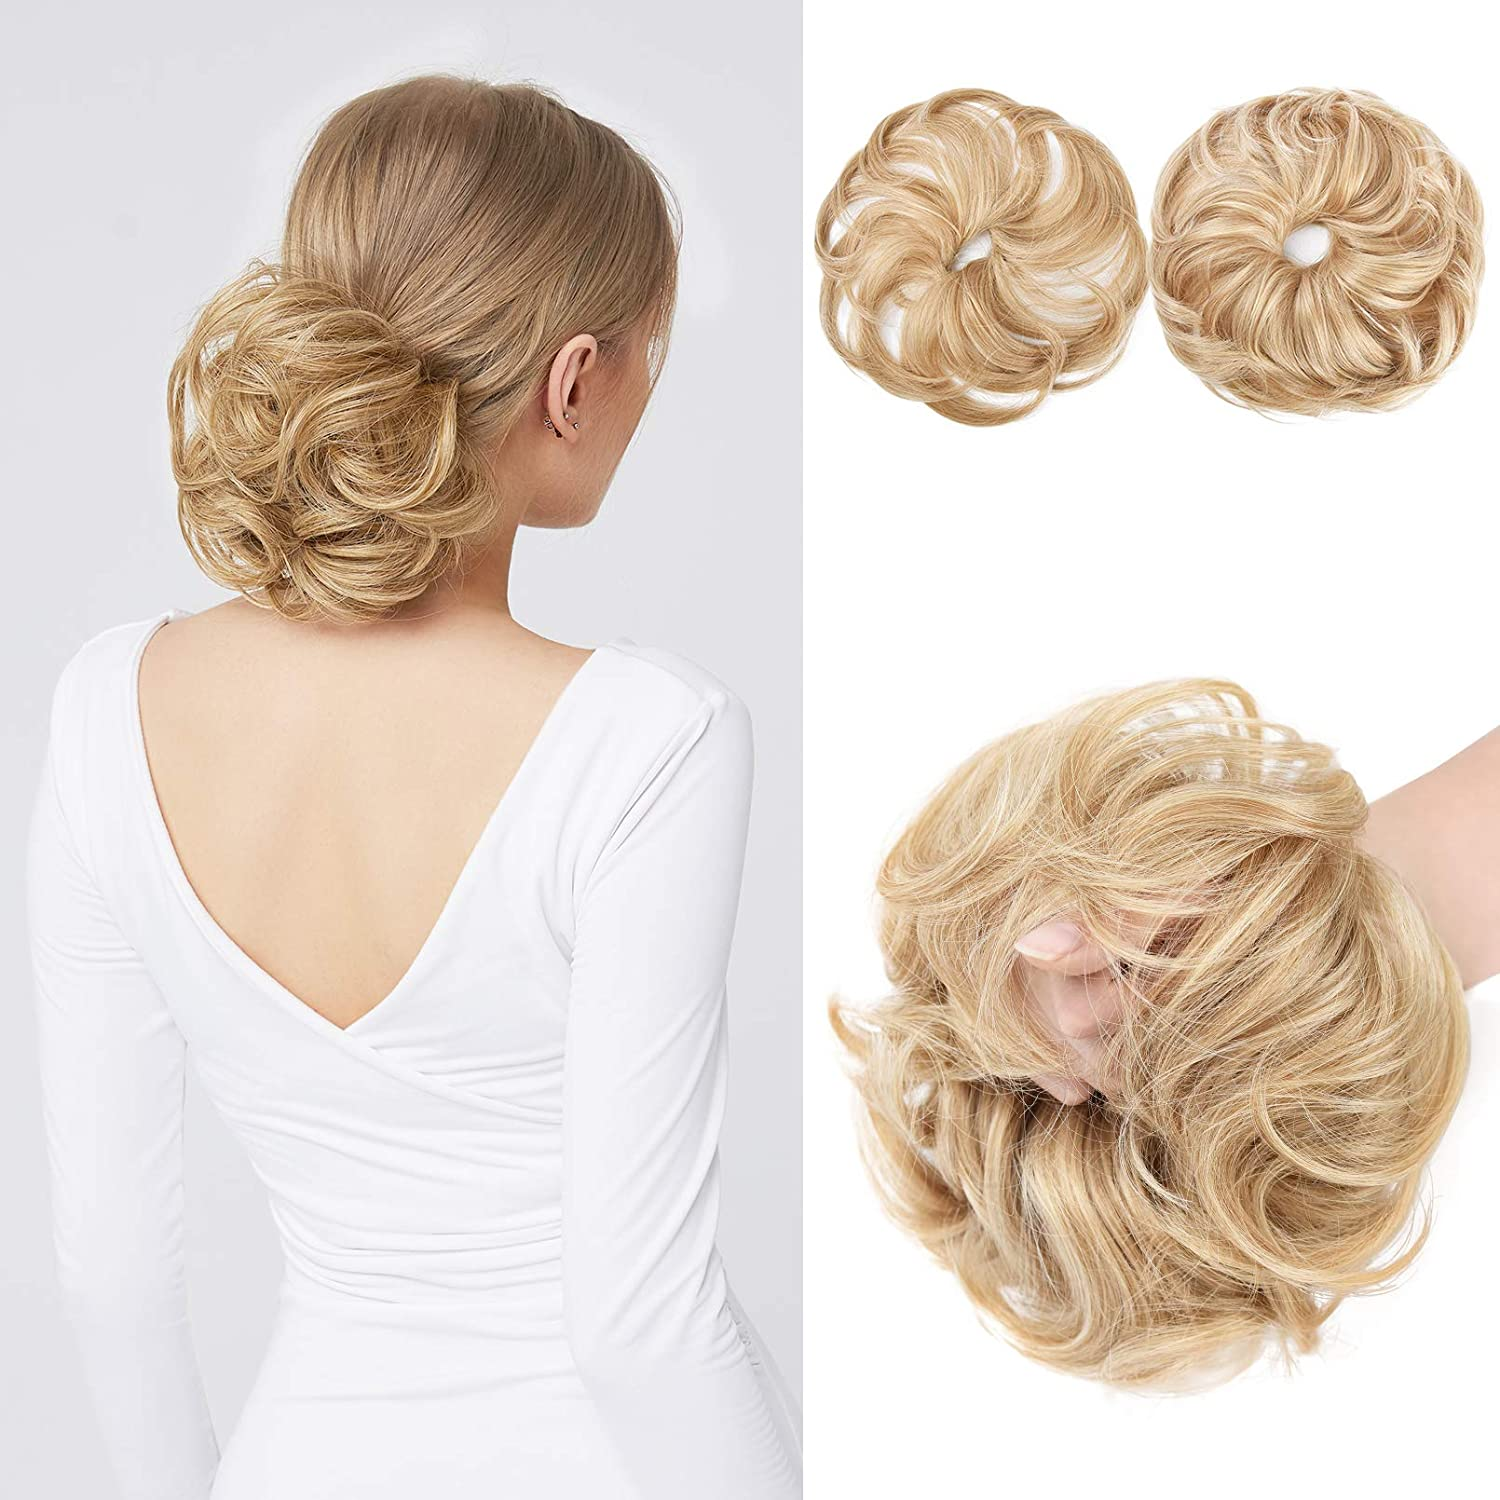 REECHO Translated unisex 2PCS Long Tousled Updo Hair Bun Extensions Messy